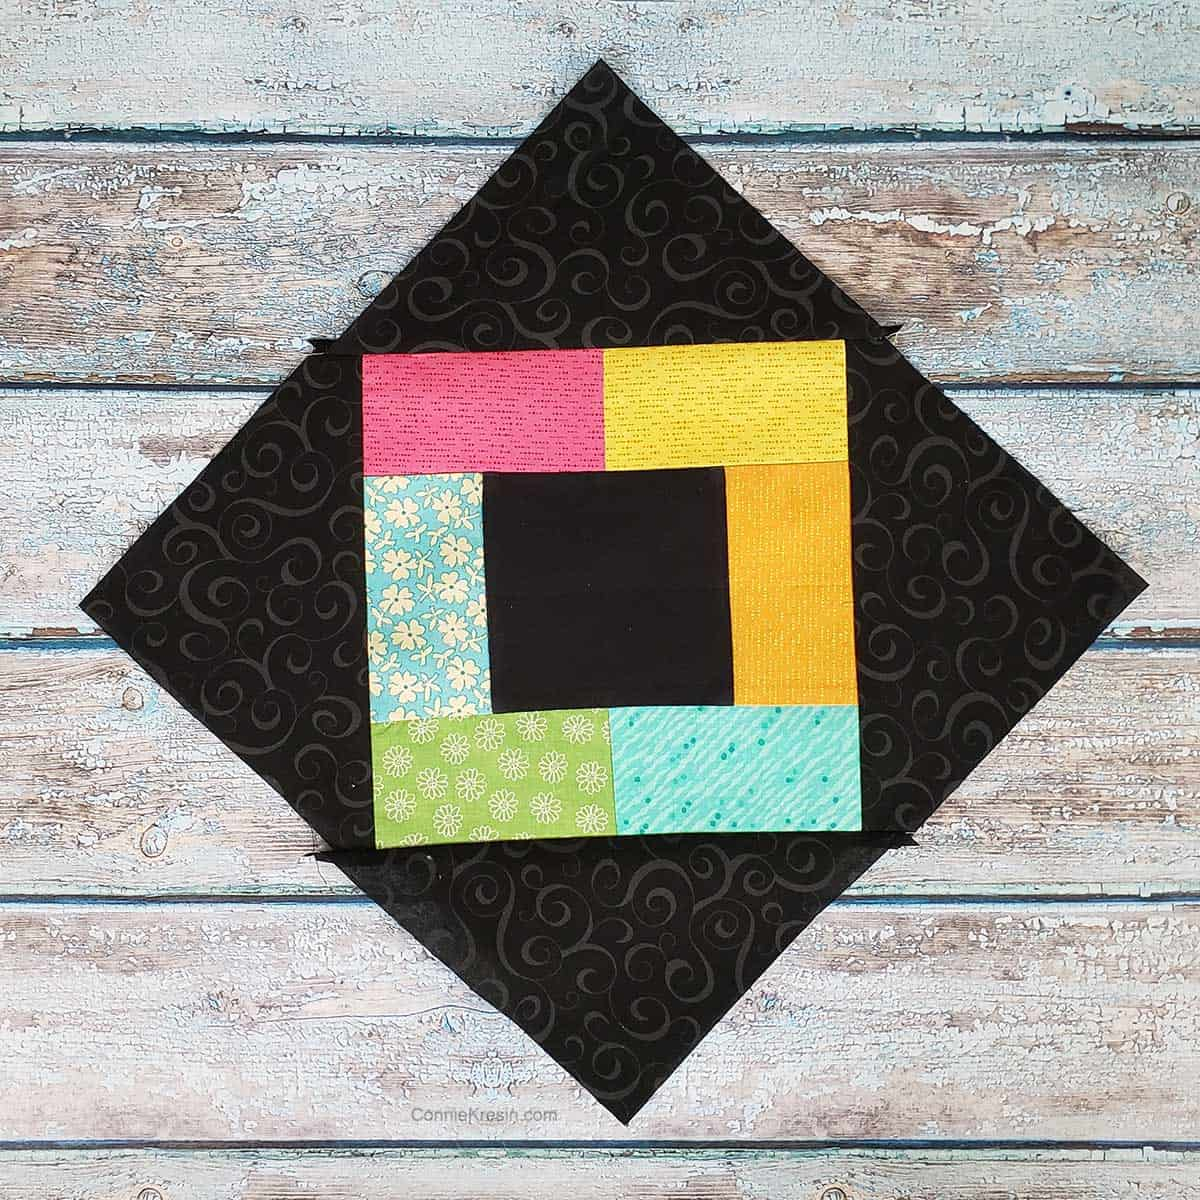 Add the corner triangles to the quilt block